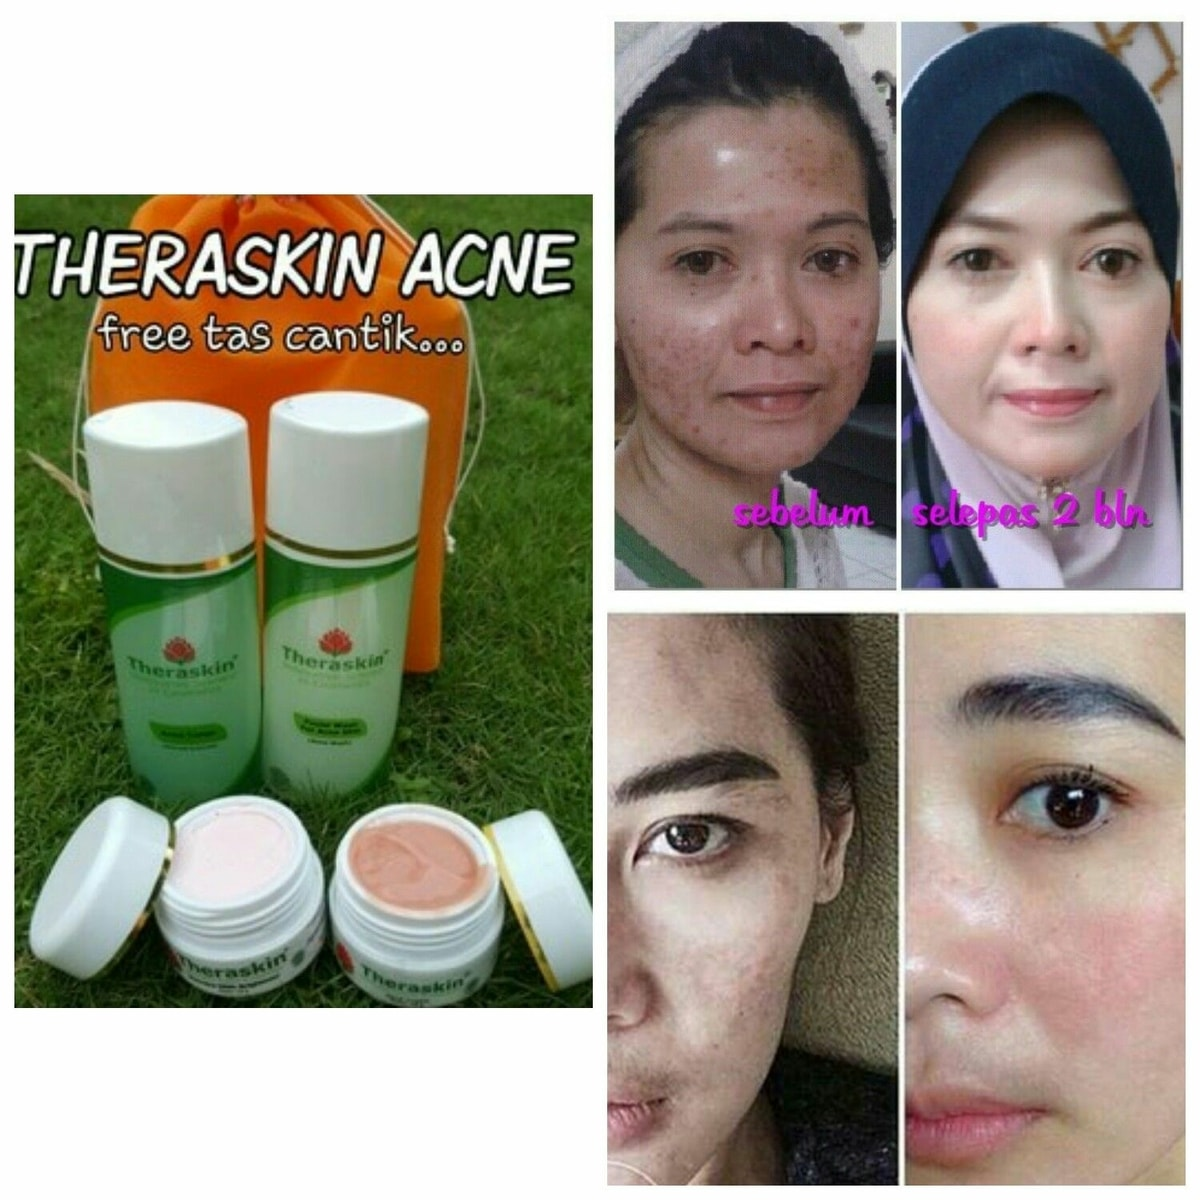 Testimoni Paket Theraskin Acne: Review dari Customer